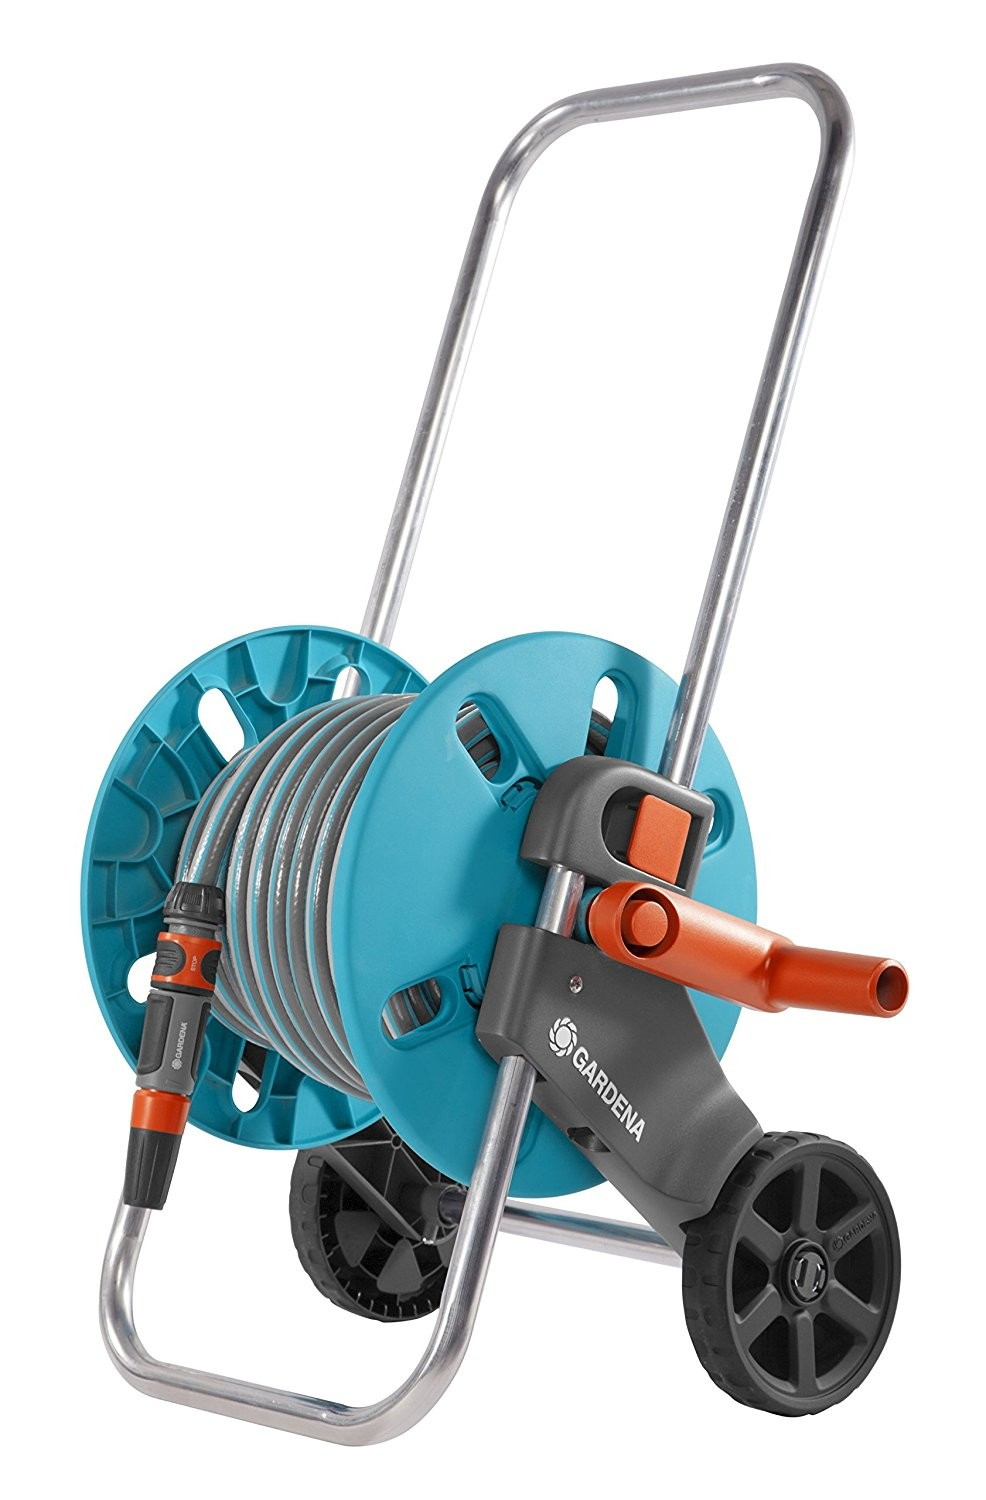 Gardena Gartenplaner Anleitung Gardena Aquaroll S Cart Reel Manual Blue Grey Orange